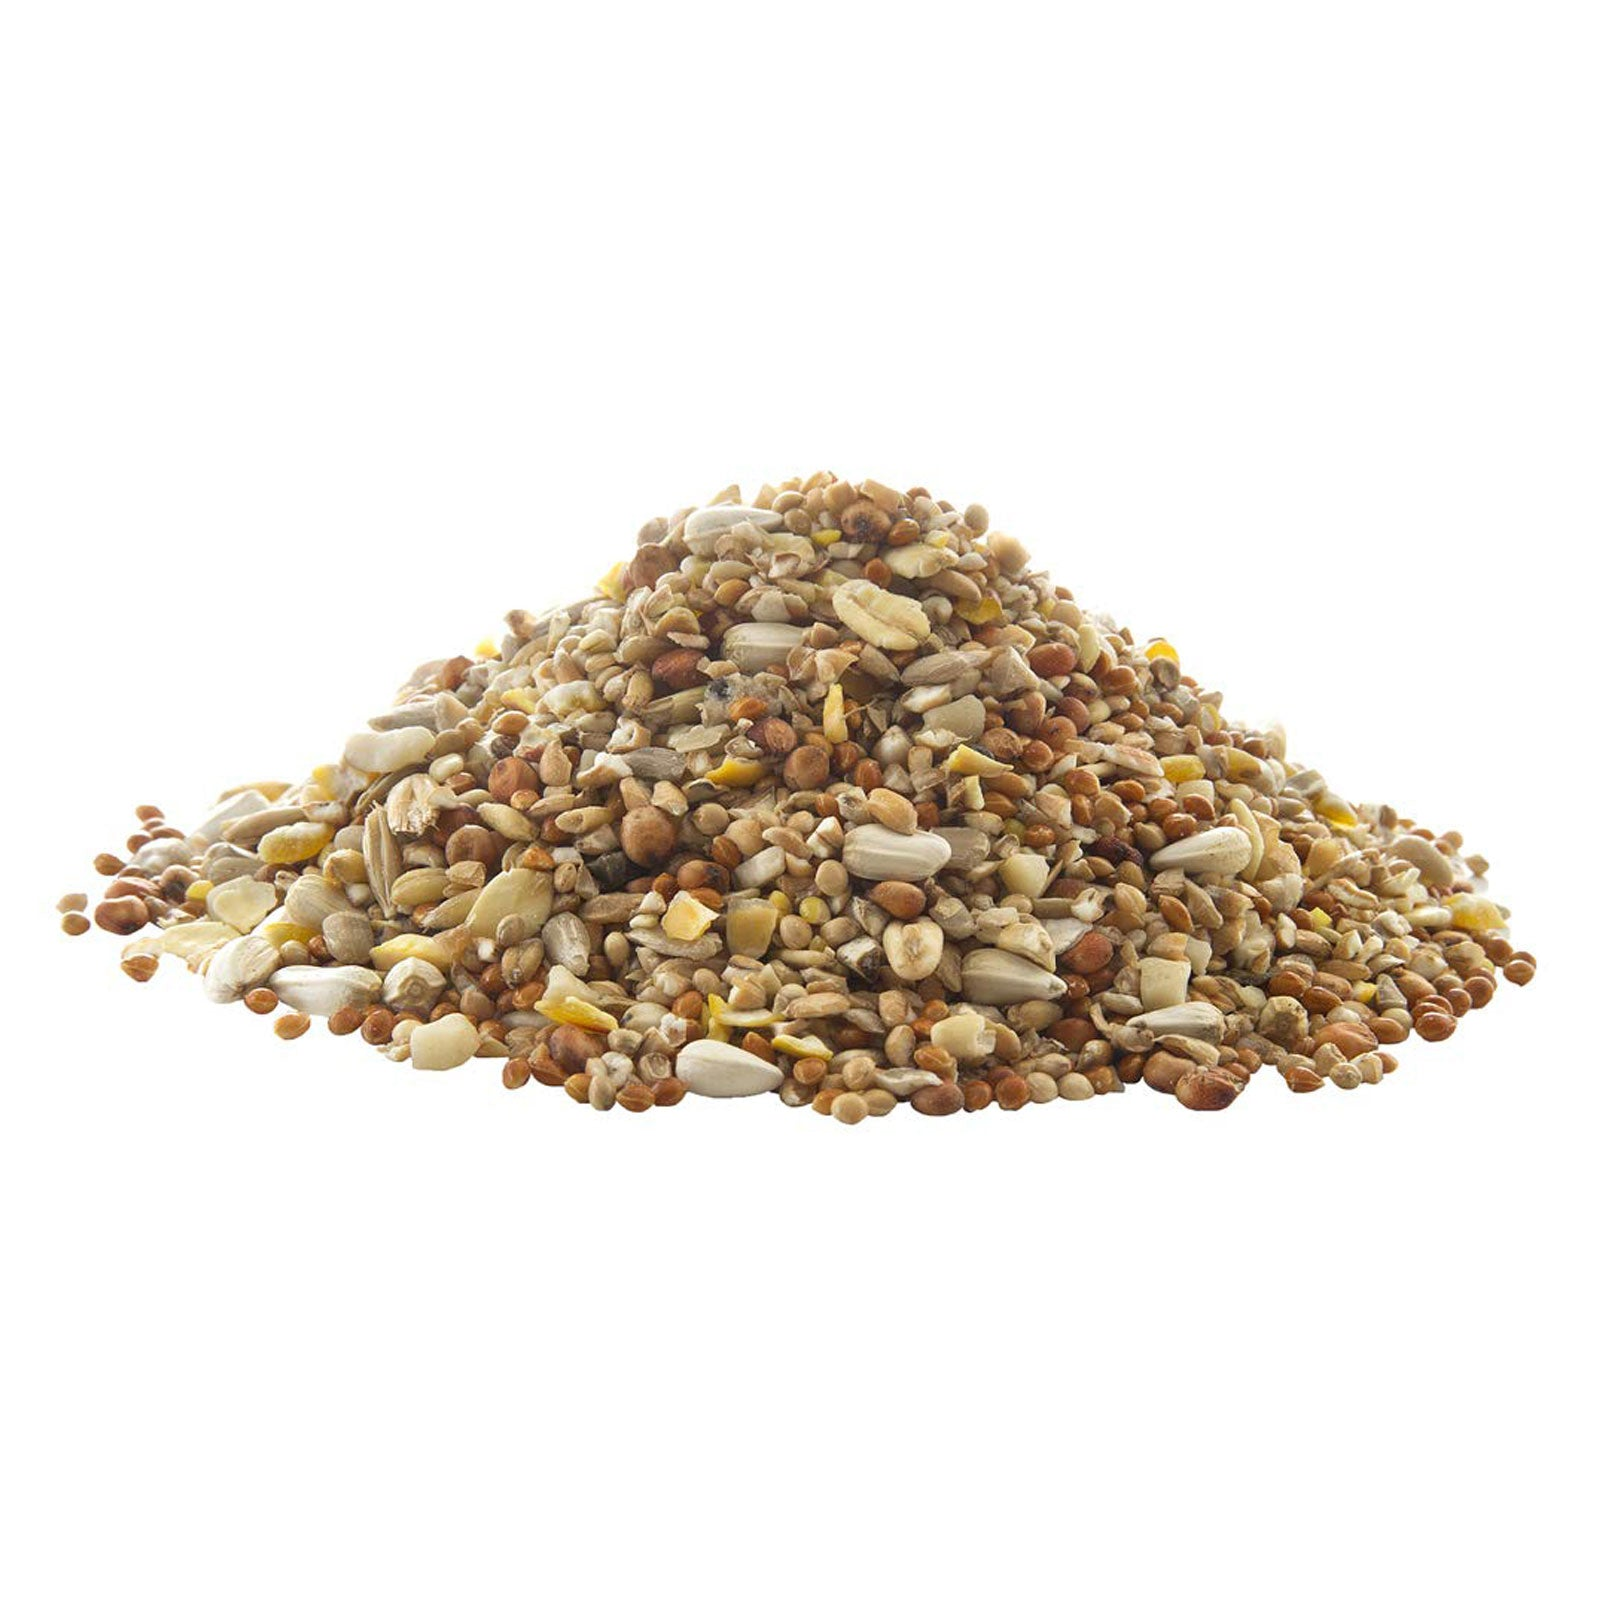 Peckish Complete 12.75kg Seed & Nut Mix Wild Bird All Seasons Garden Feed